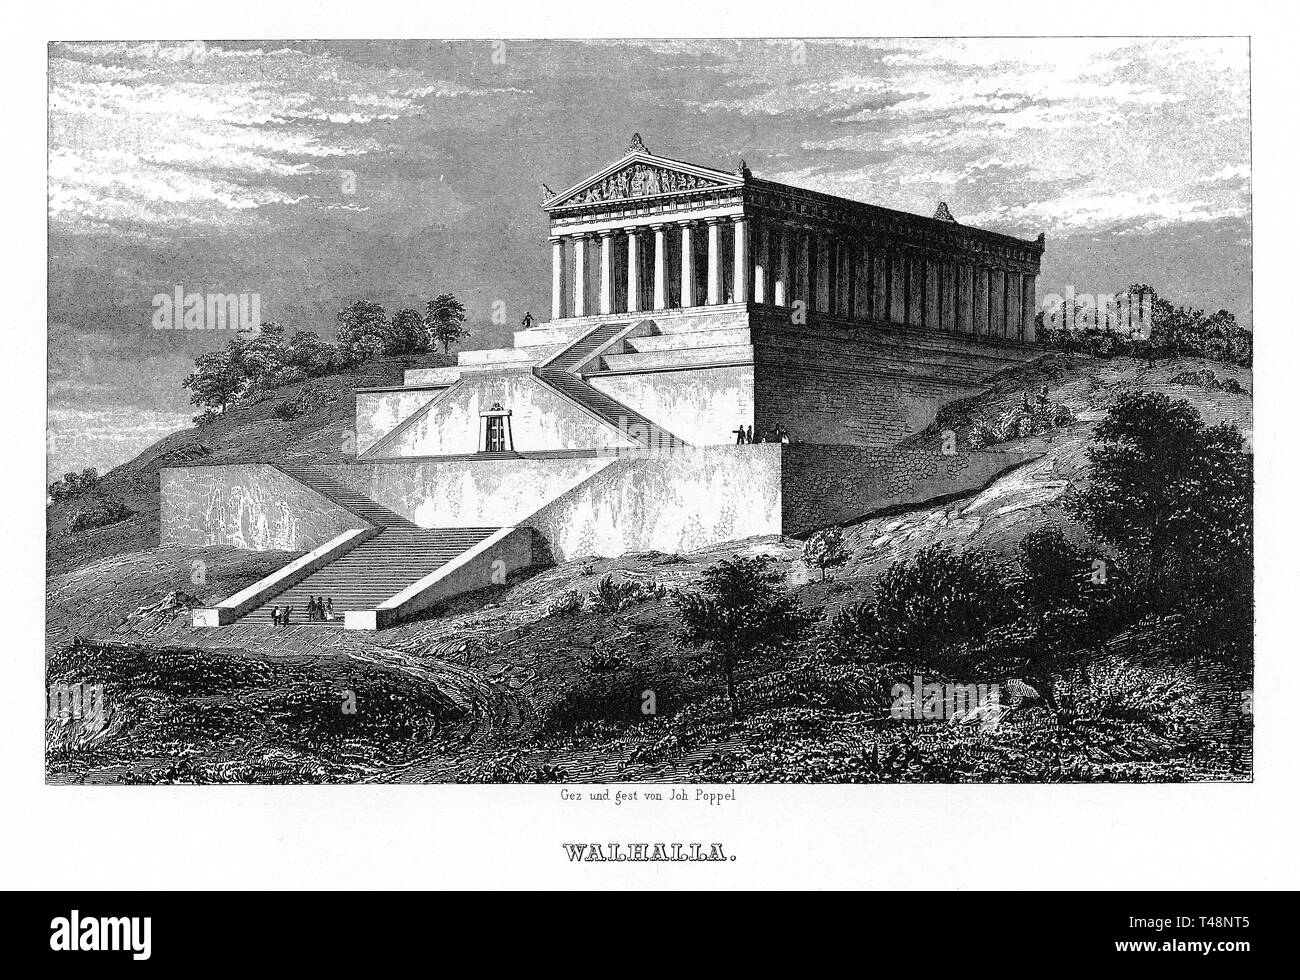 Walhalla, drawing and steel engraving by J. Poppel, 1840-1854, Kingdom of Bavaria, Germany - Stock Image